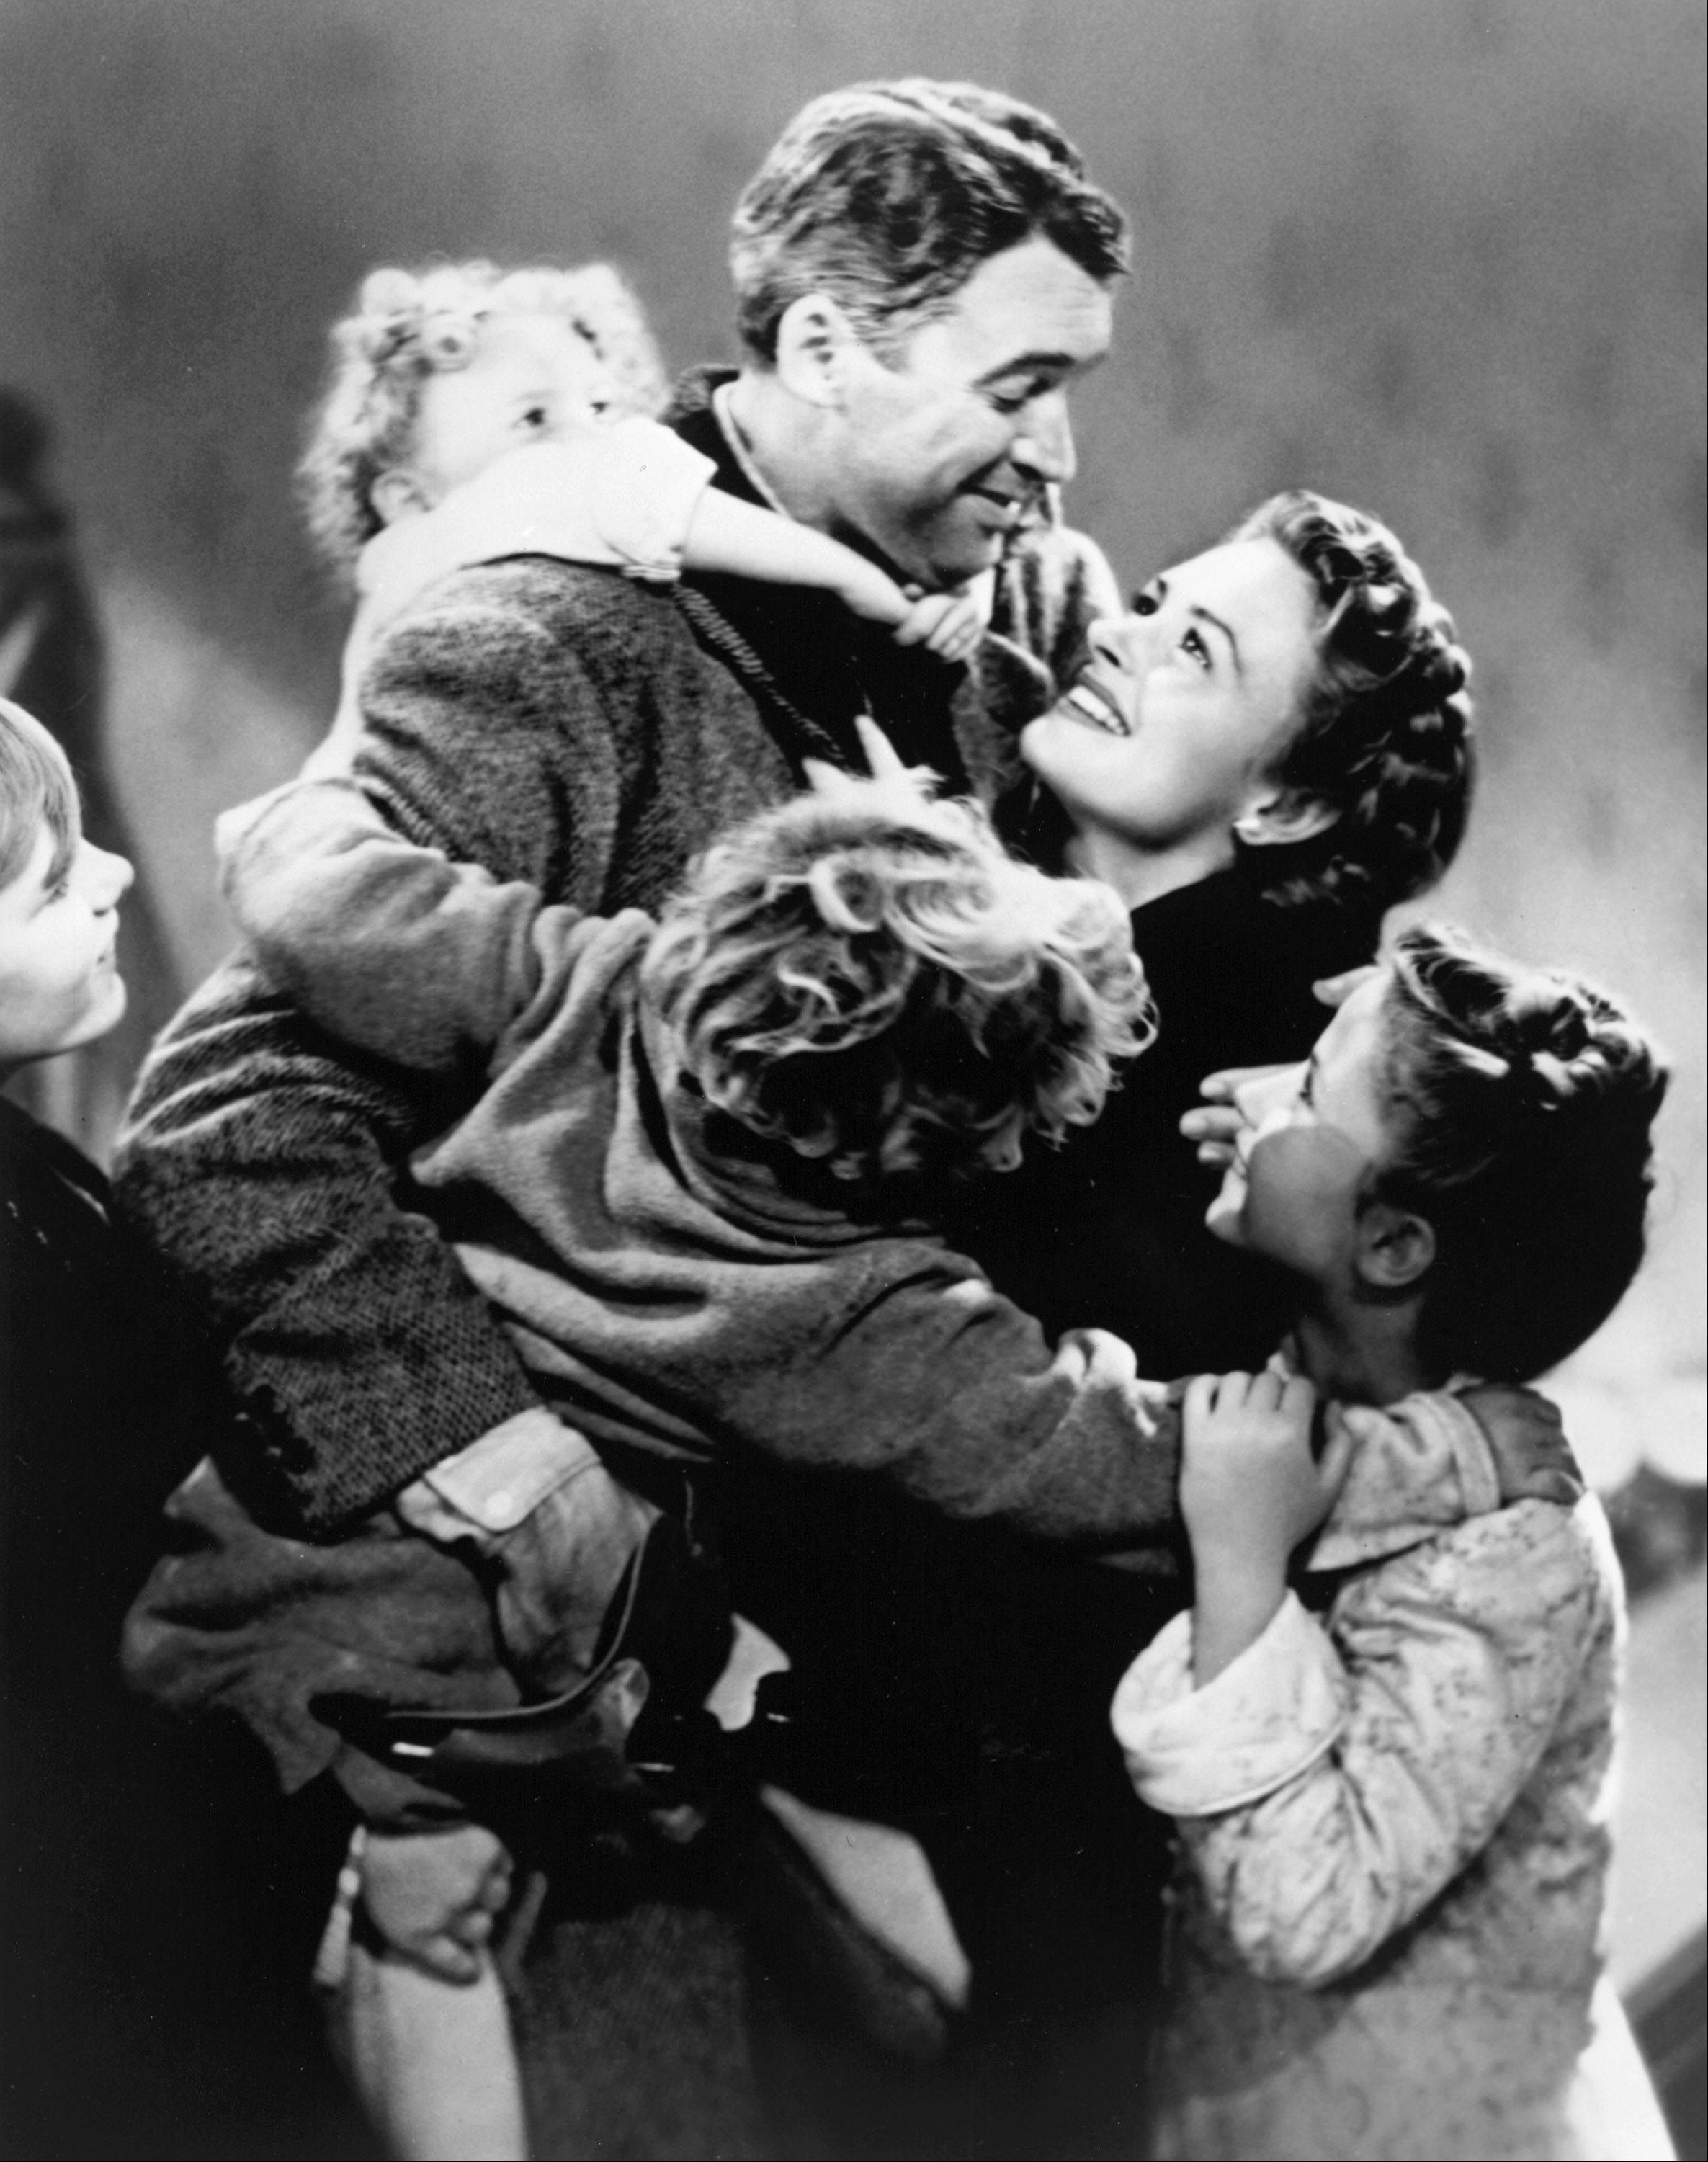 """It's a Wonderful Life"" will be screened at the Hollywood Palms in Naperville and Hollywood Blvd. Cinema in Woodridge with actress Karolyn Grimes making appearances before screening."